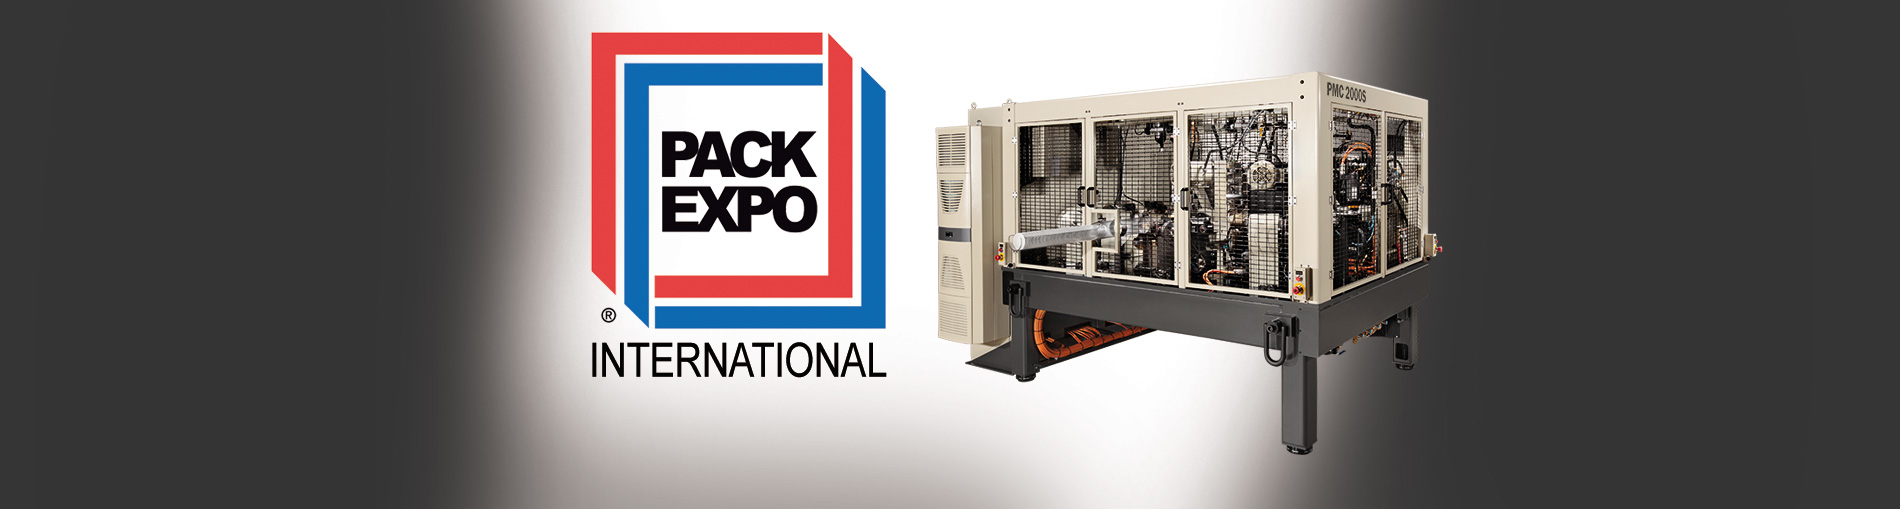 You're invited to PACK EXPO International • November 6 - 9, 2016 in Chicago, IL